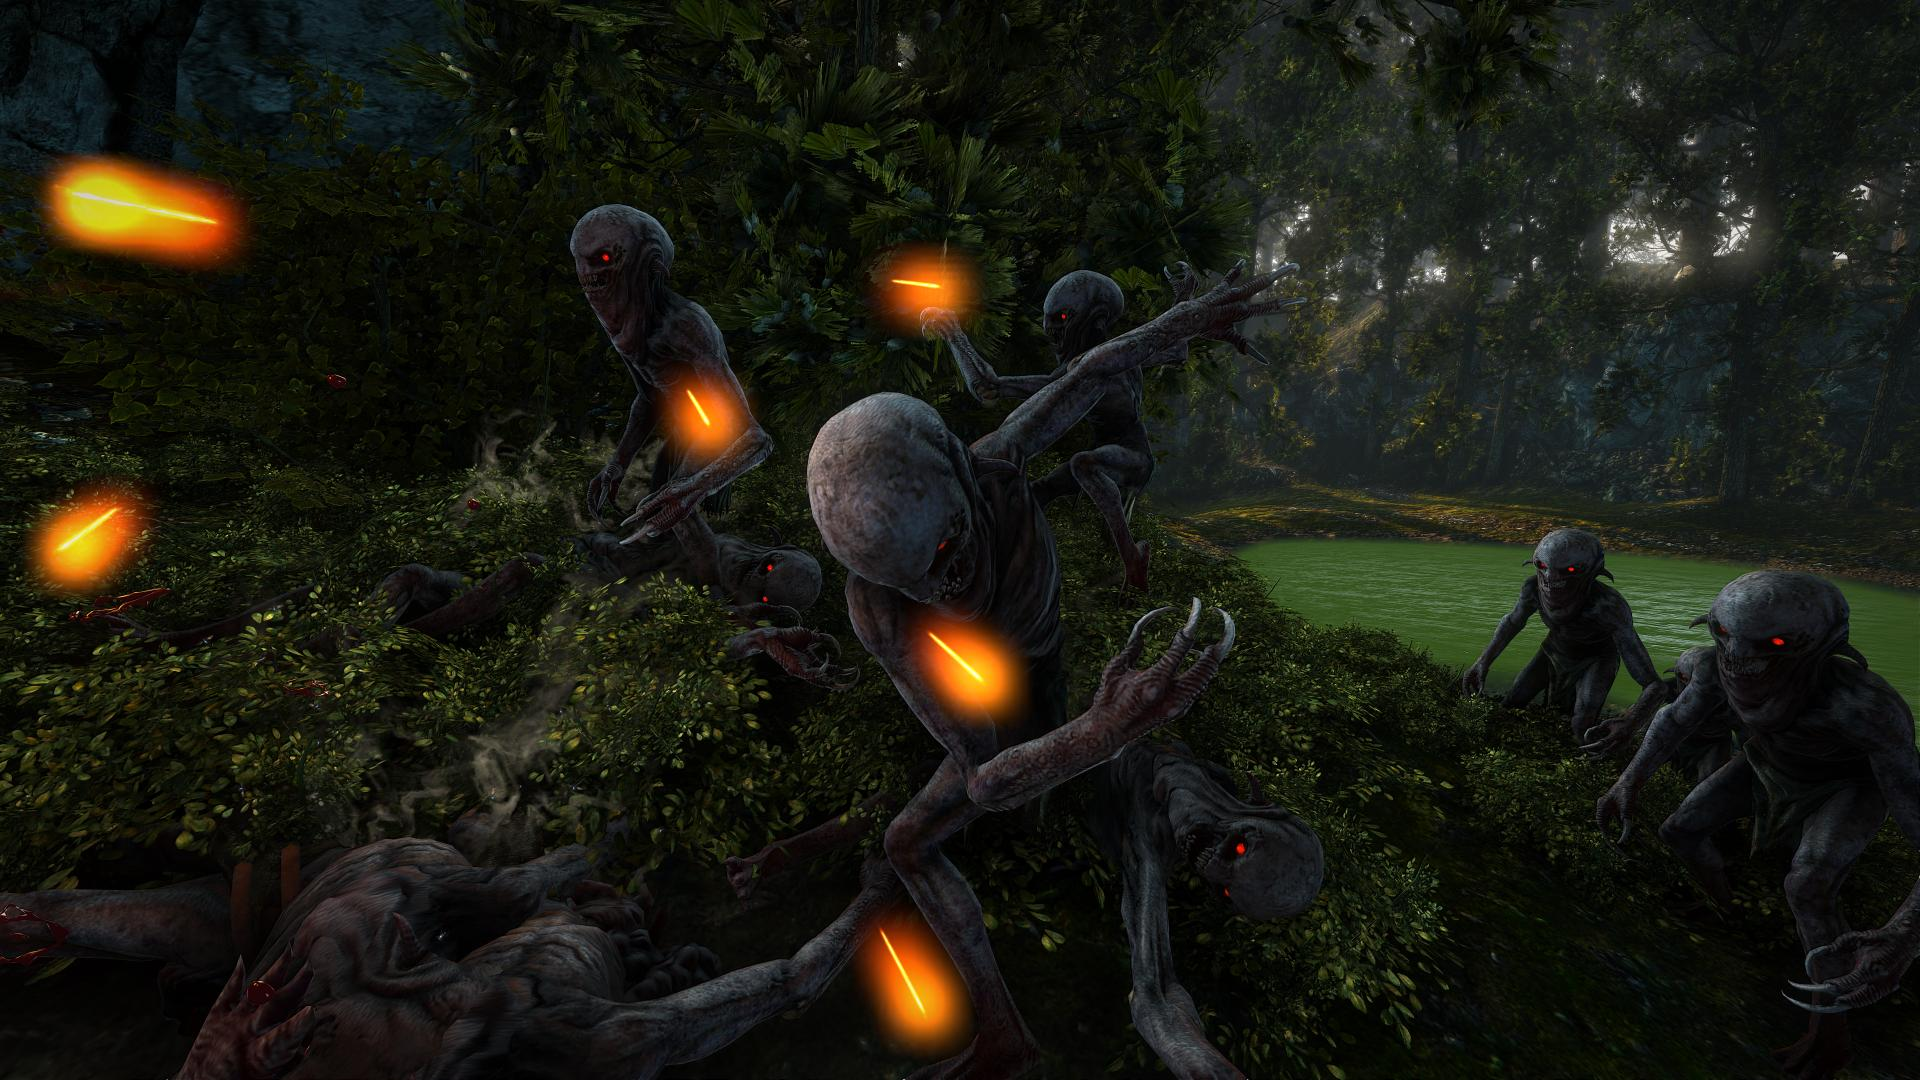 The Witcher 2: Assassins of Kings - Gameplay